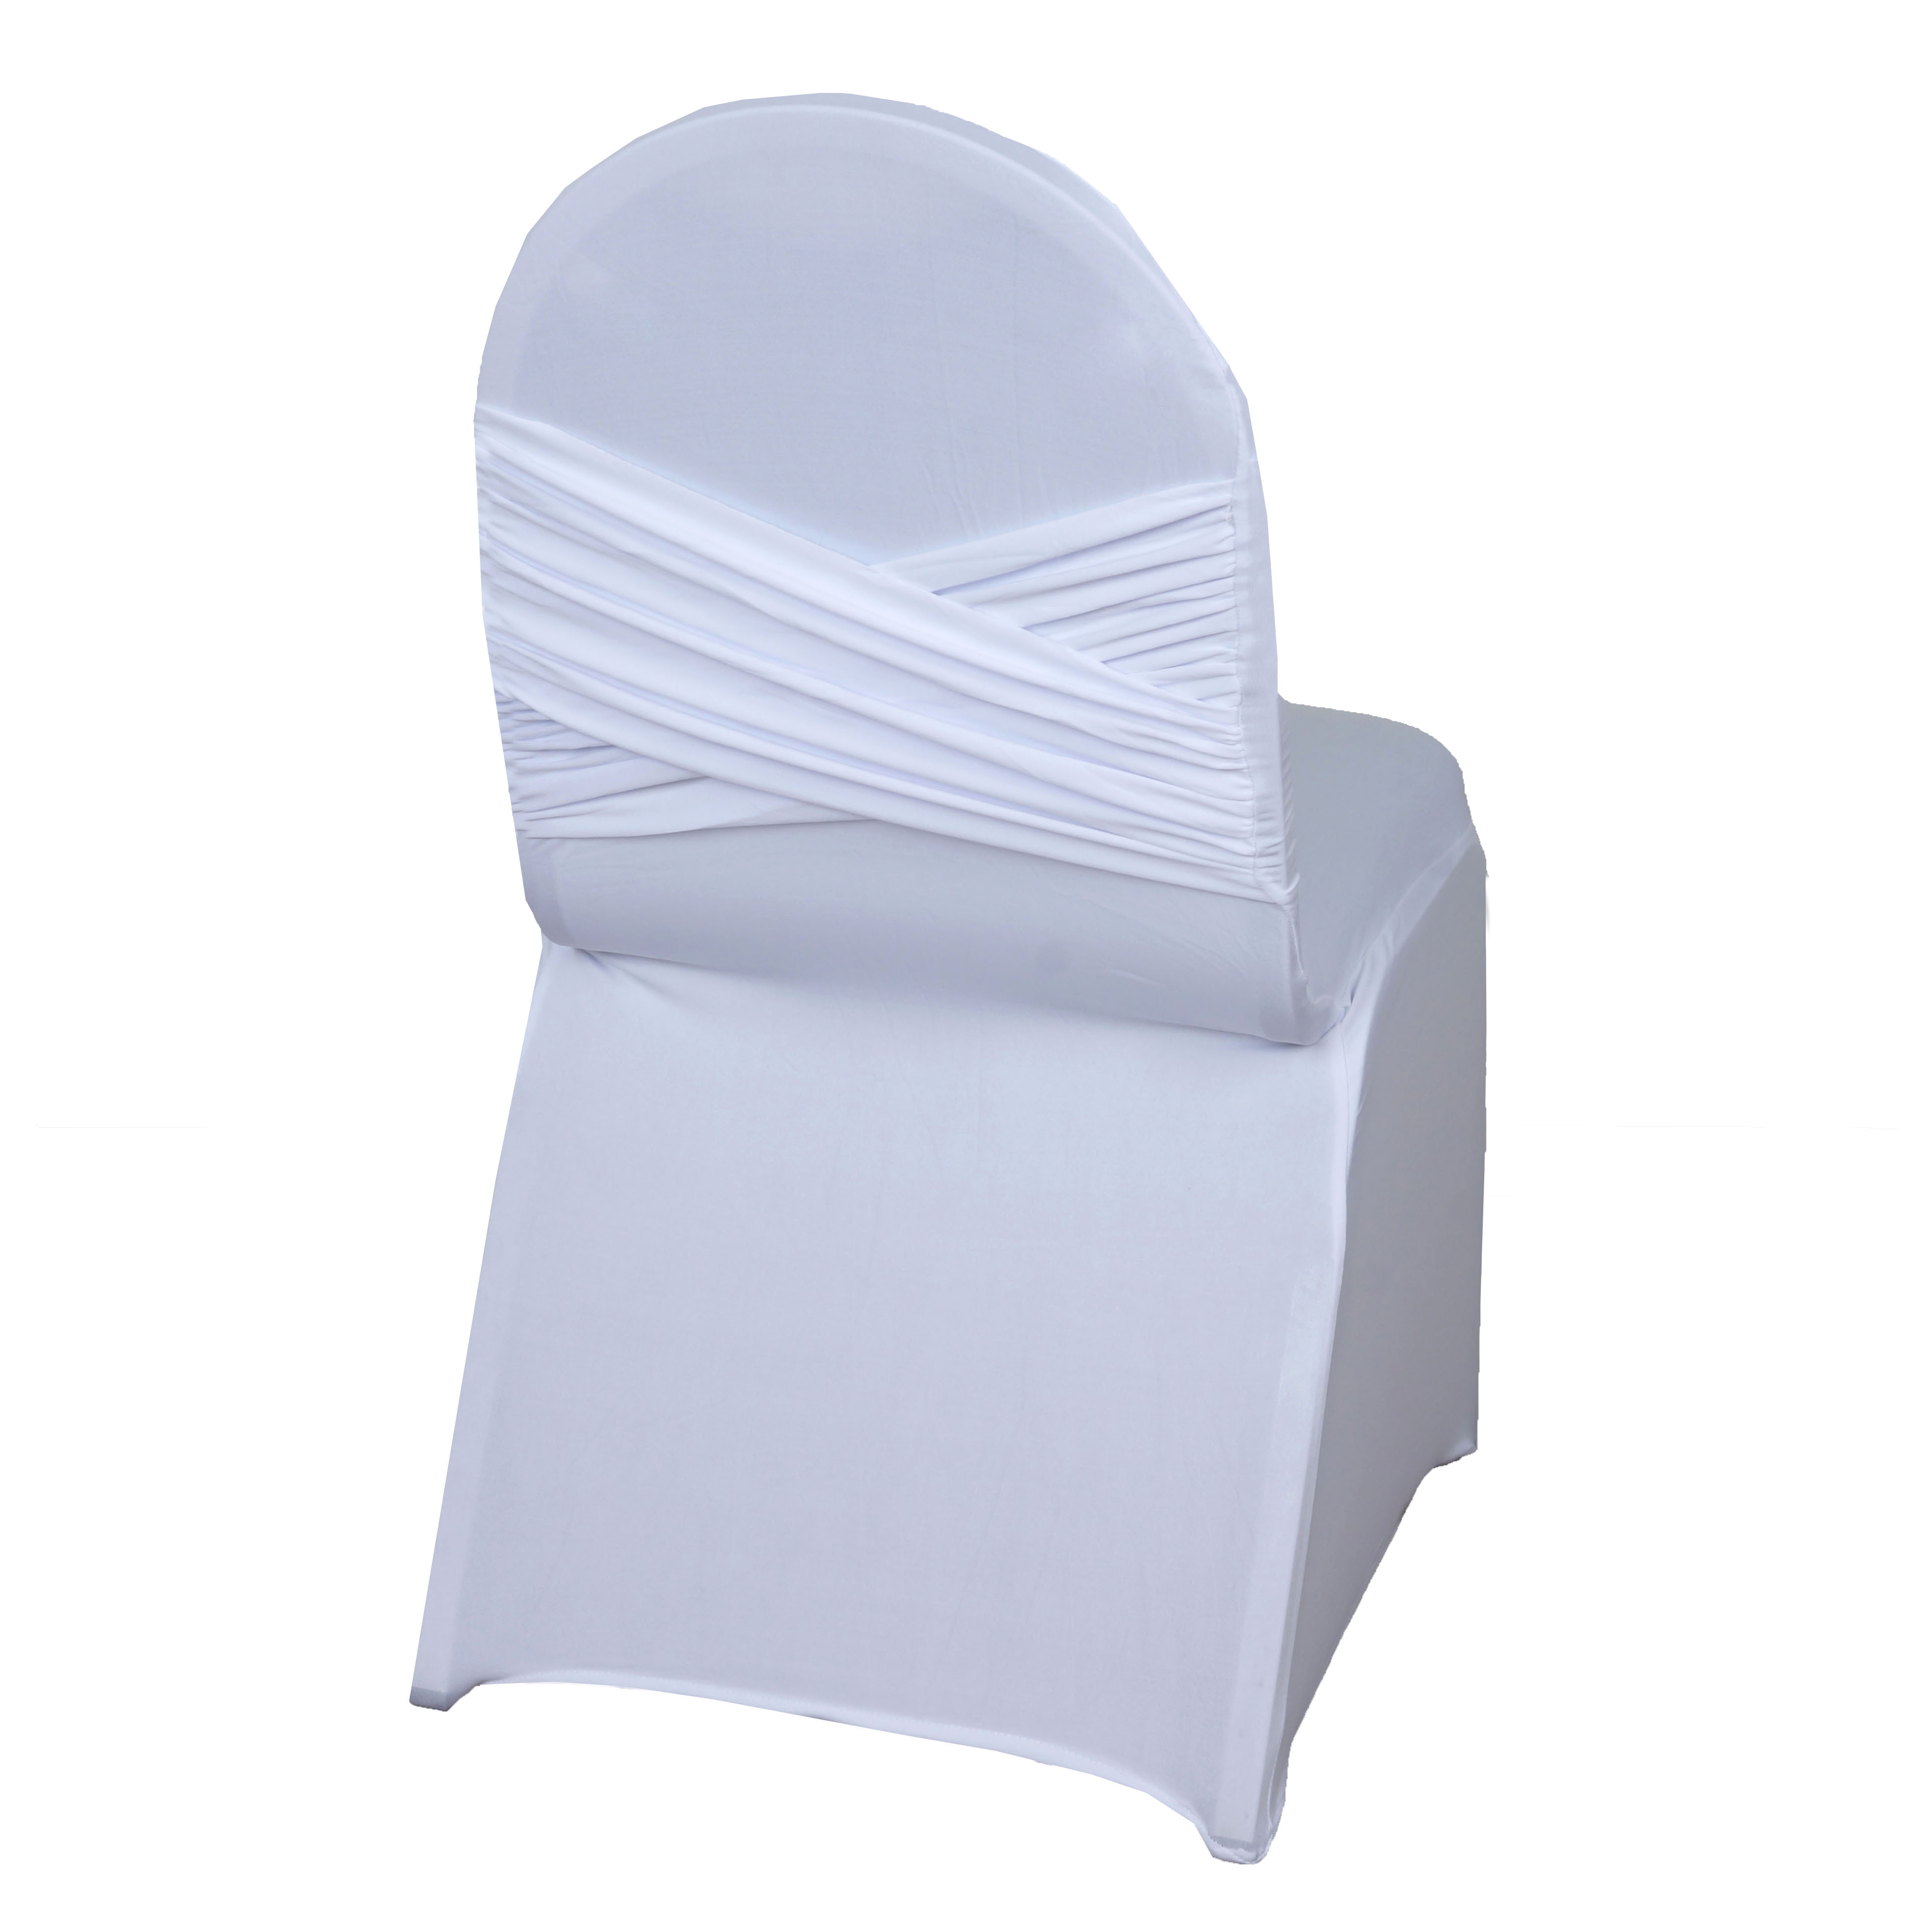 Chair Cover Balsacircle Banquet Spandex Stretchable Chair Covers Crisscross Design Slipcovers For Party Wedding Home Decorations